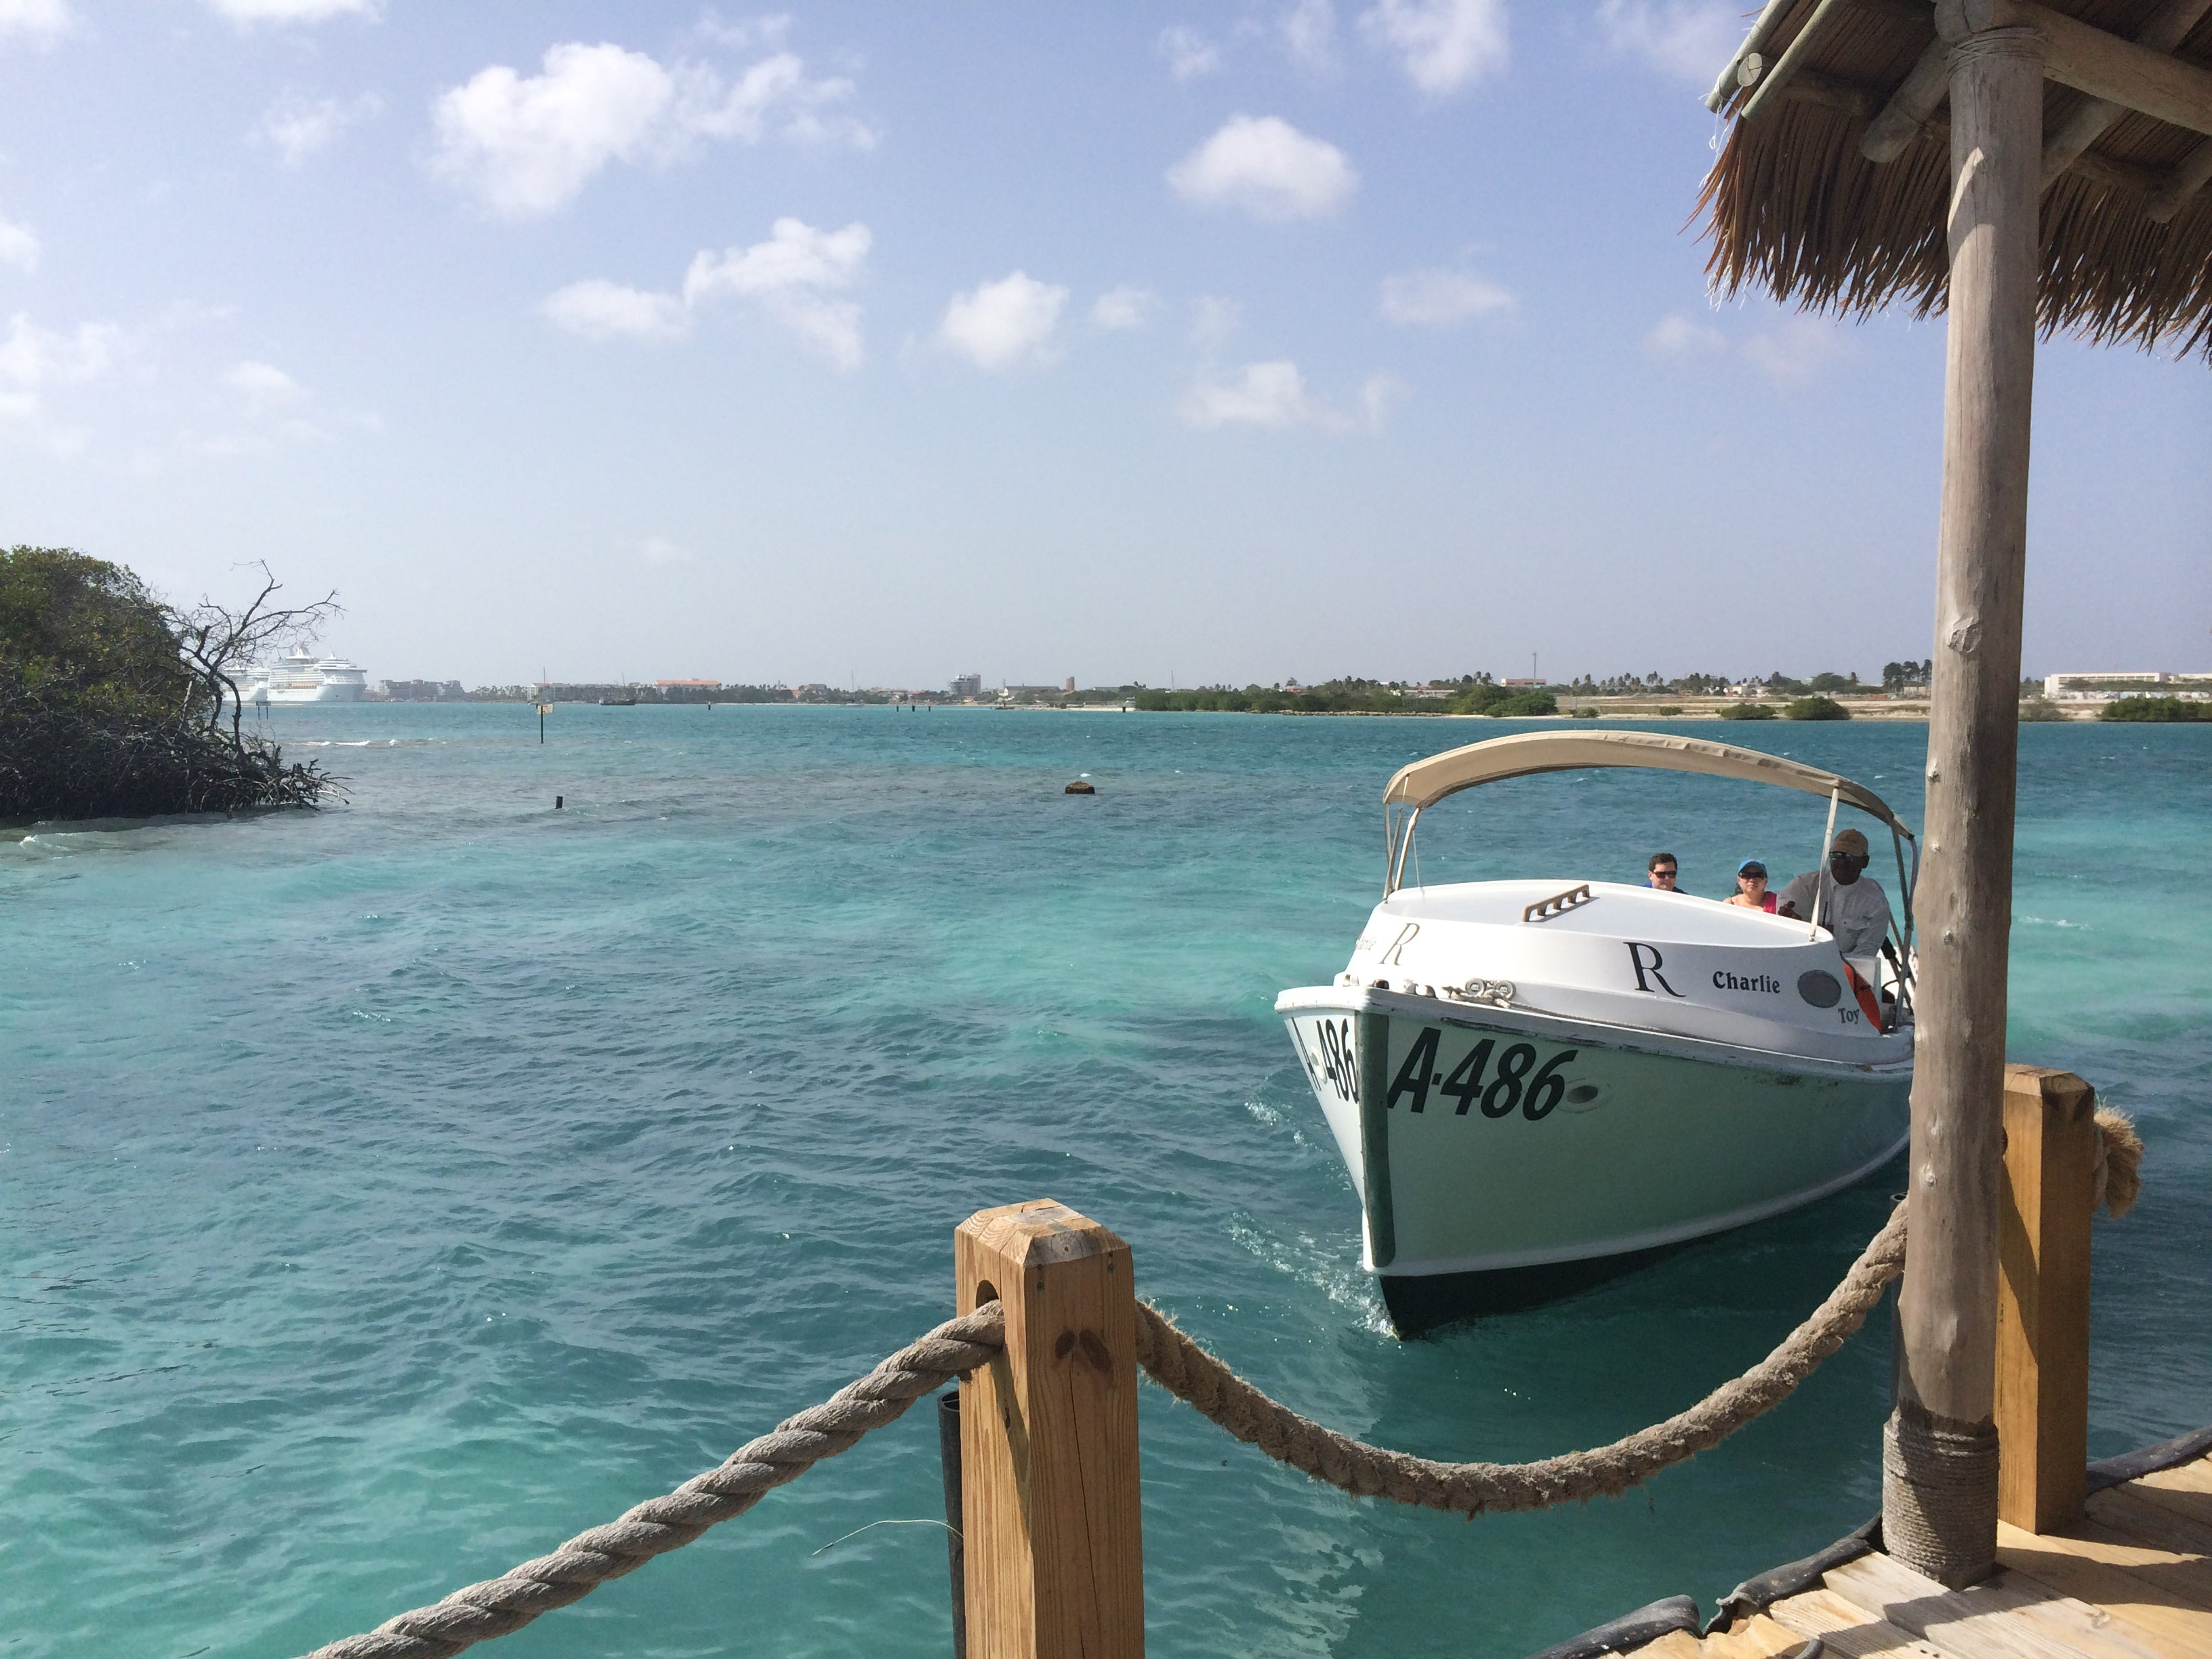 Private Island Renaissance Boat Aruba by Karma for a Cure Blog